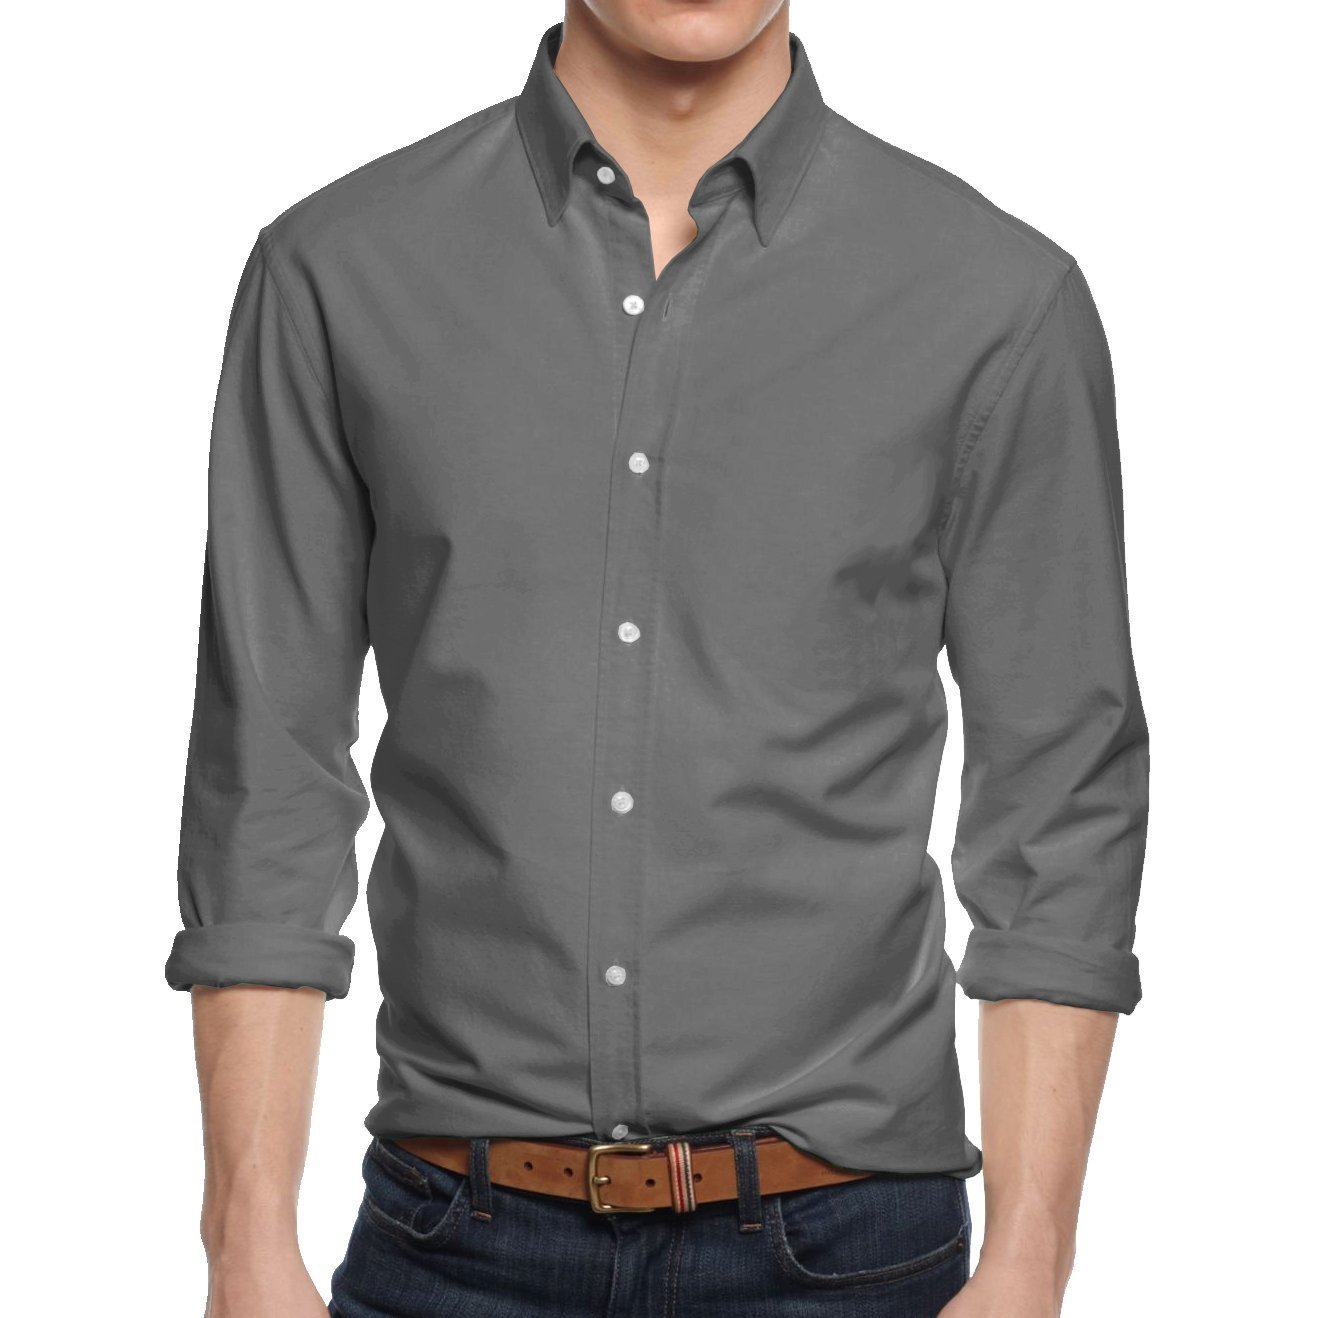 HB Men's Slim Fit Button Down Casual Long Sleeve Dress Shirt  - X-Large / 17-17.5 - Gray